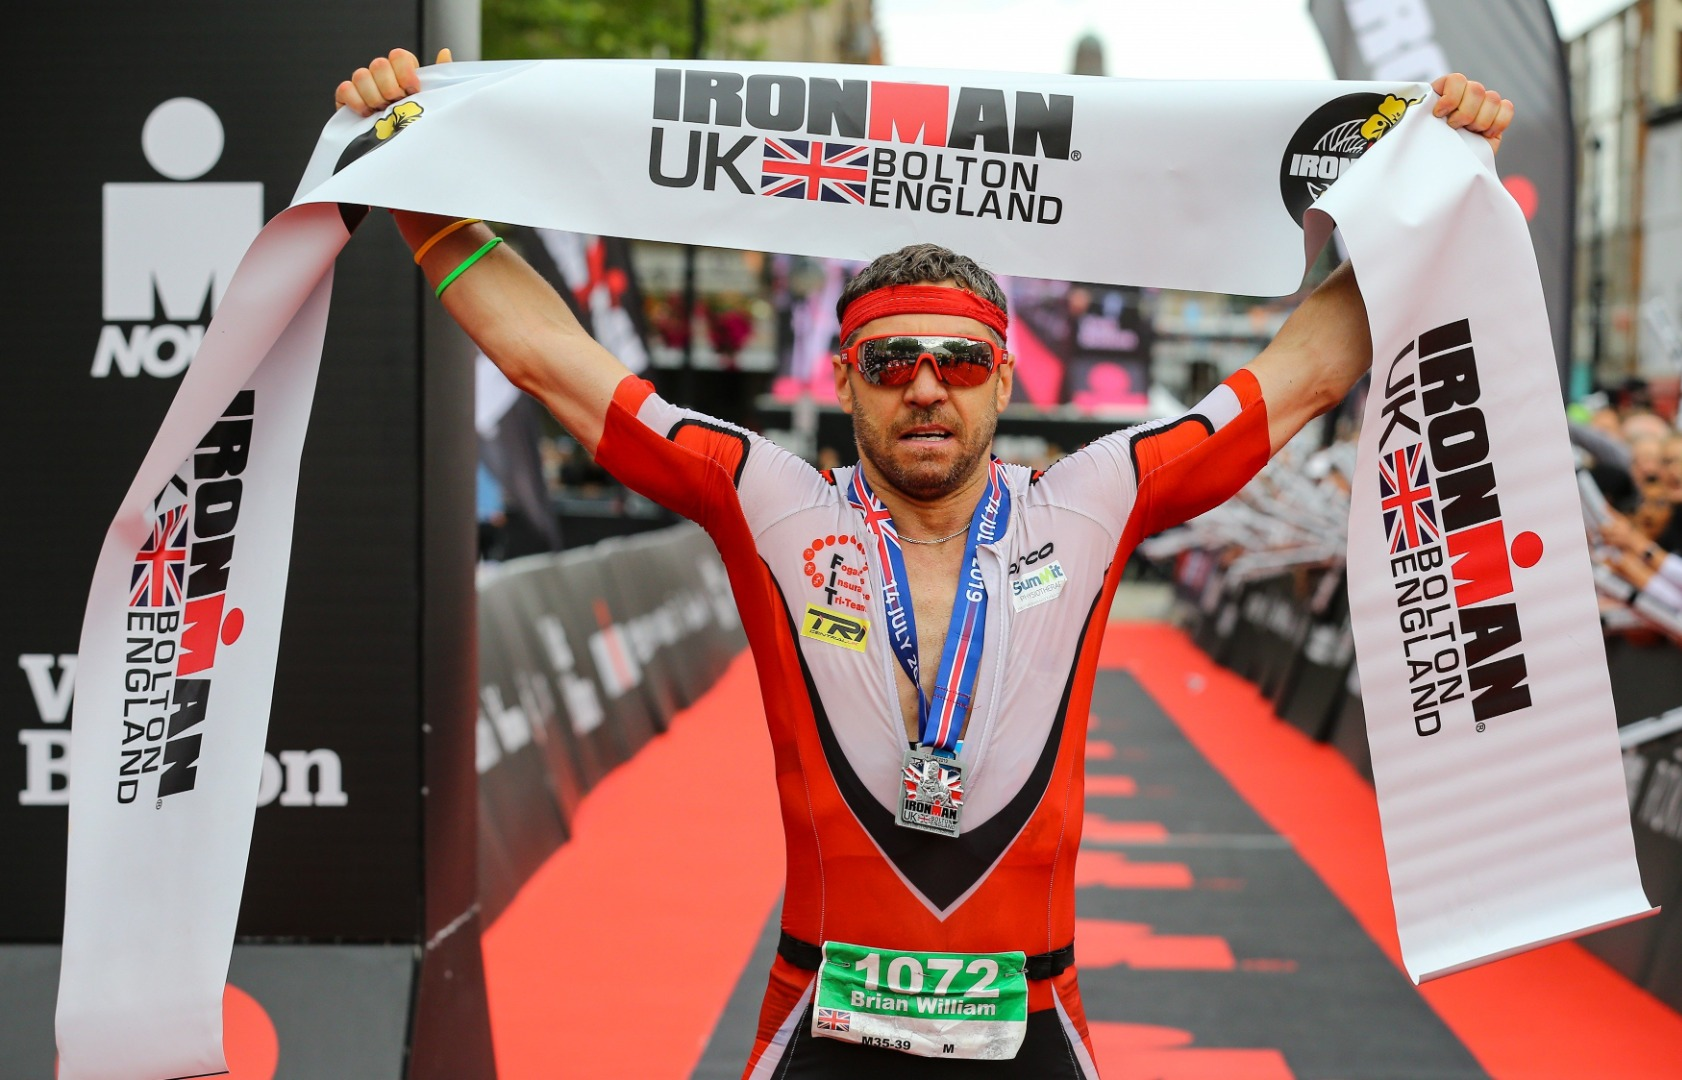 New bike course for Ironman UK 2020